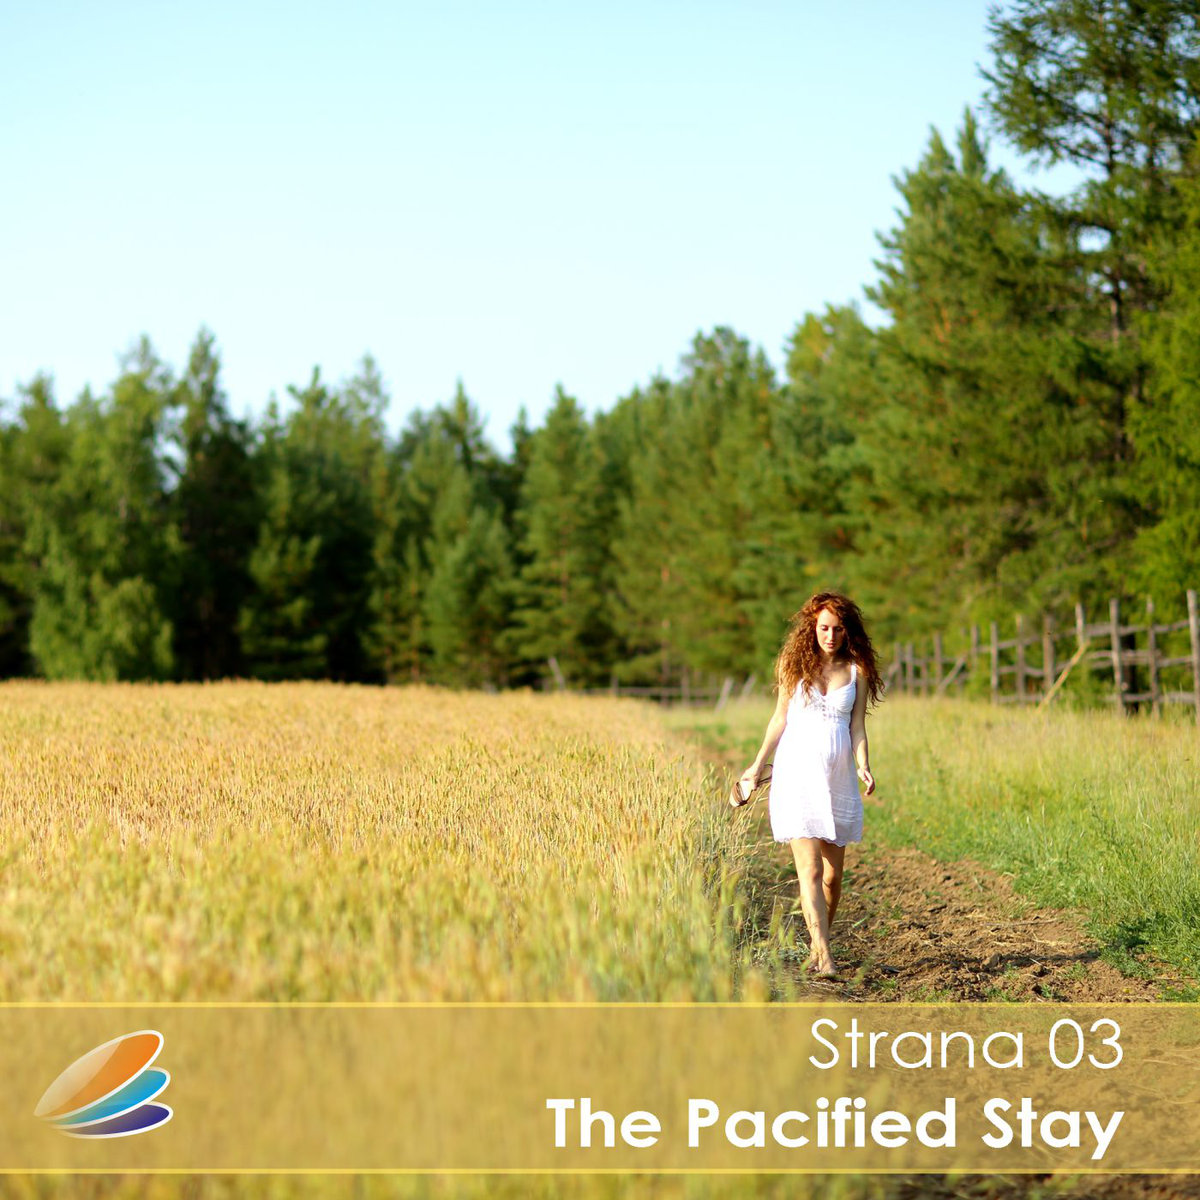 Strana 03 - The Pacified Stay